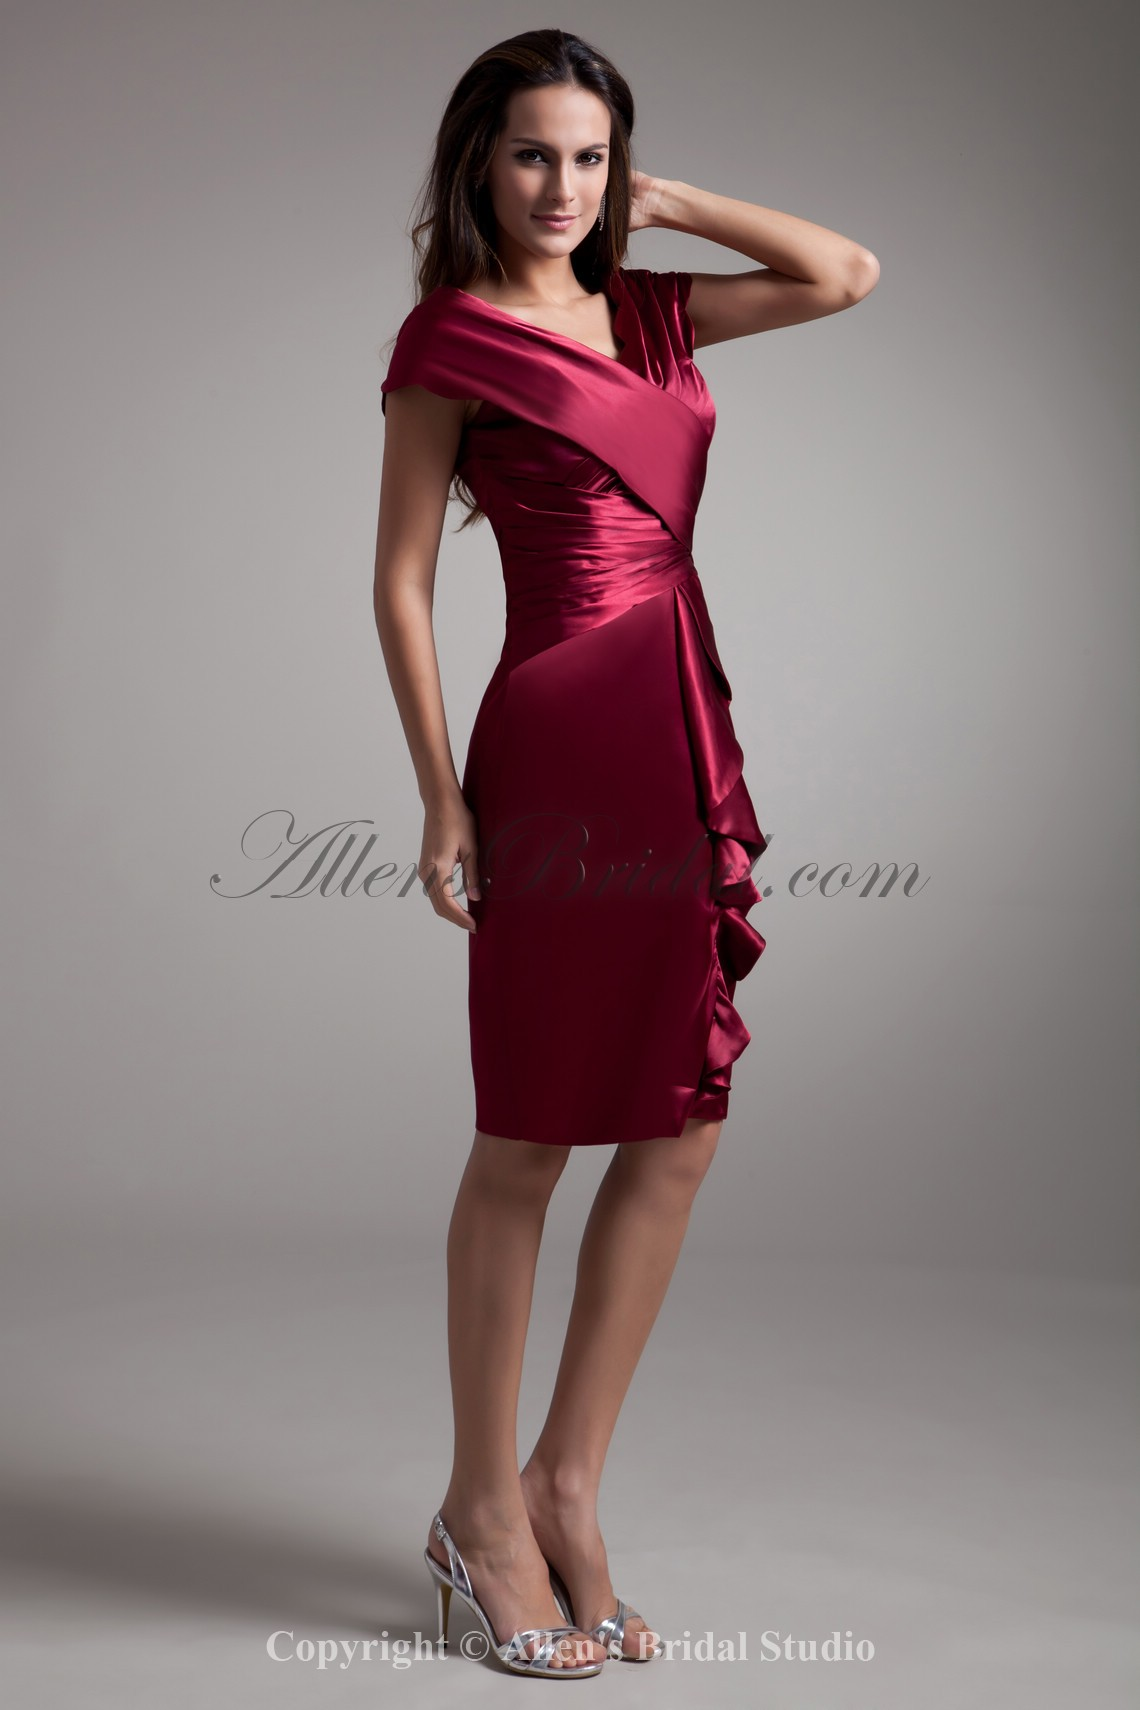 /711-5692/satin-v-neck-neckline-knee-length-sheath-cap-sleeves-cocktail-dress.jpg